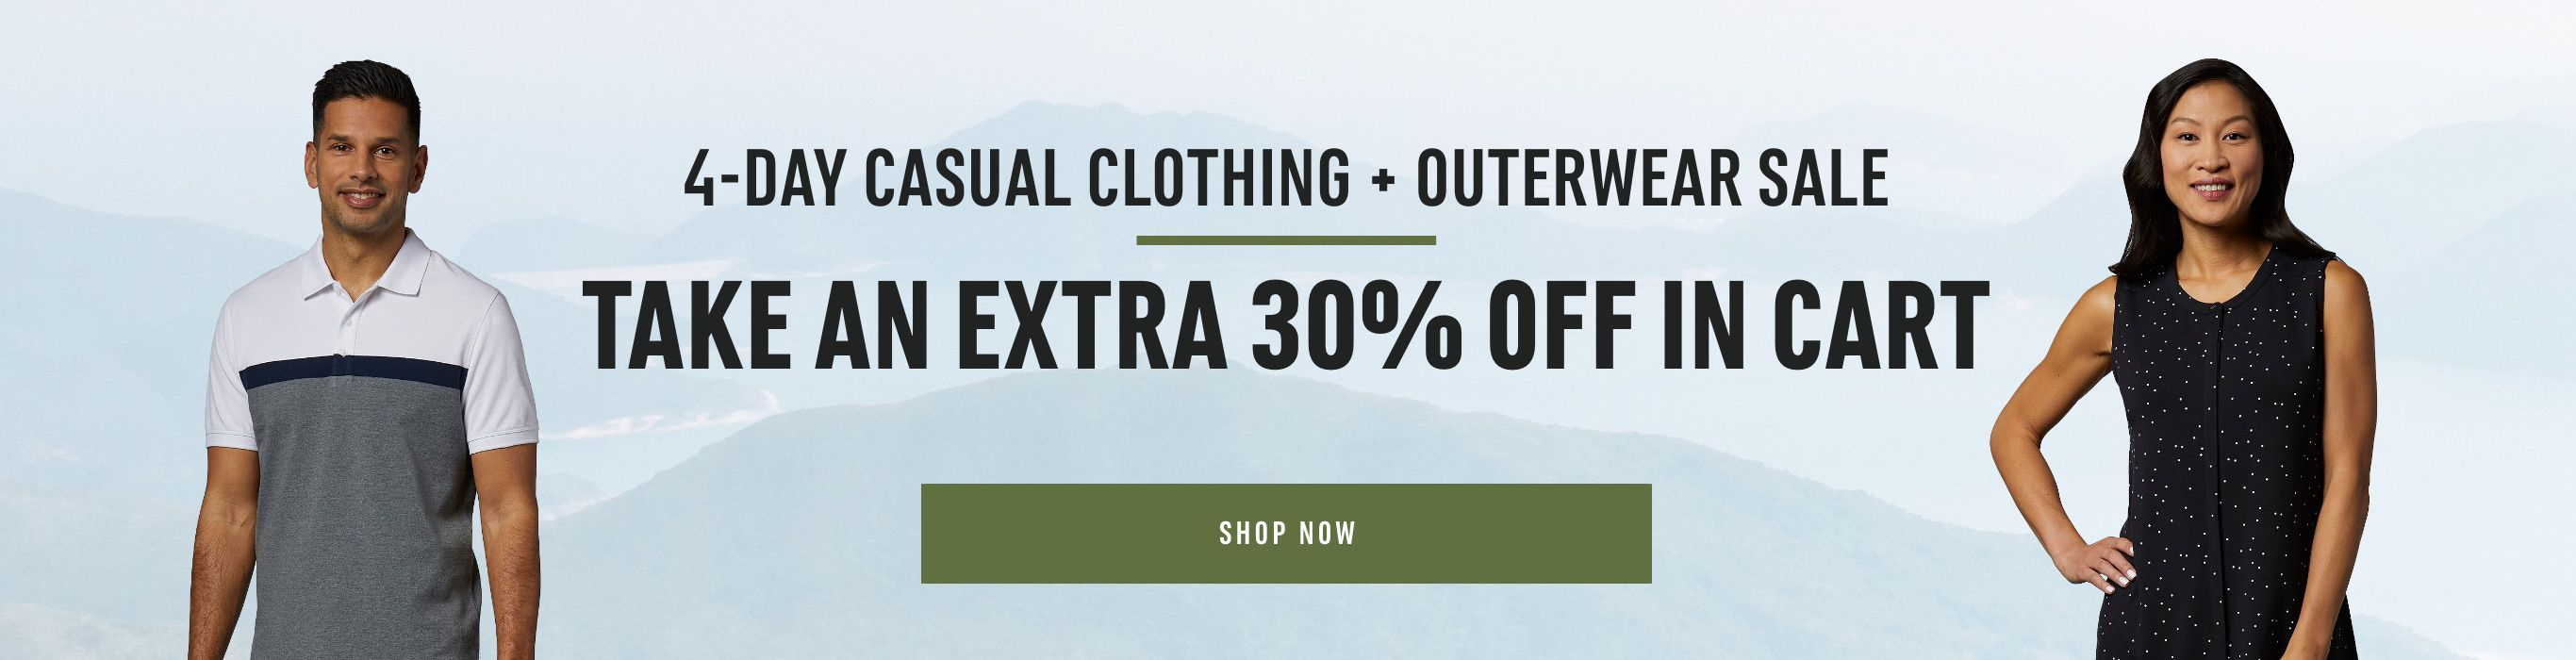 4-Day Casual Clothing & Outerwear Sale - Take an Extra 30% Off in Cart